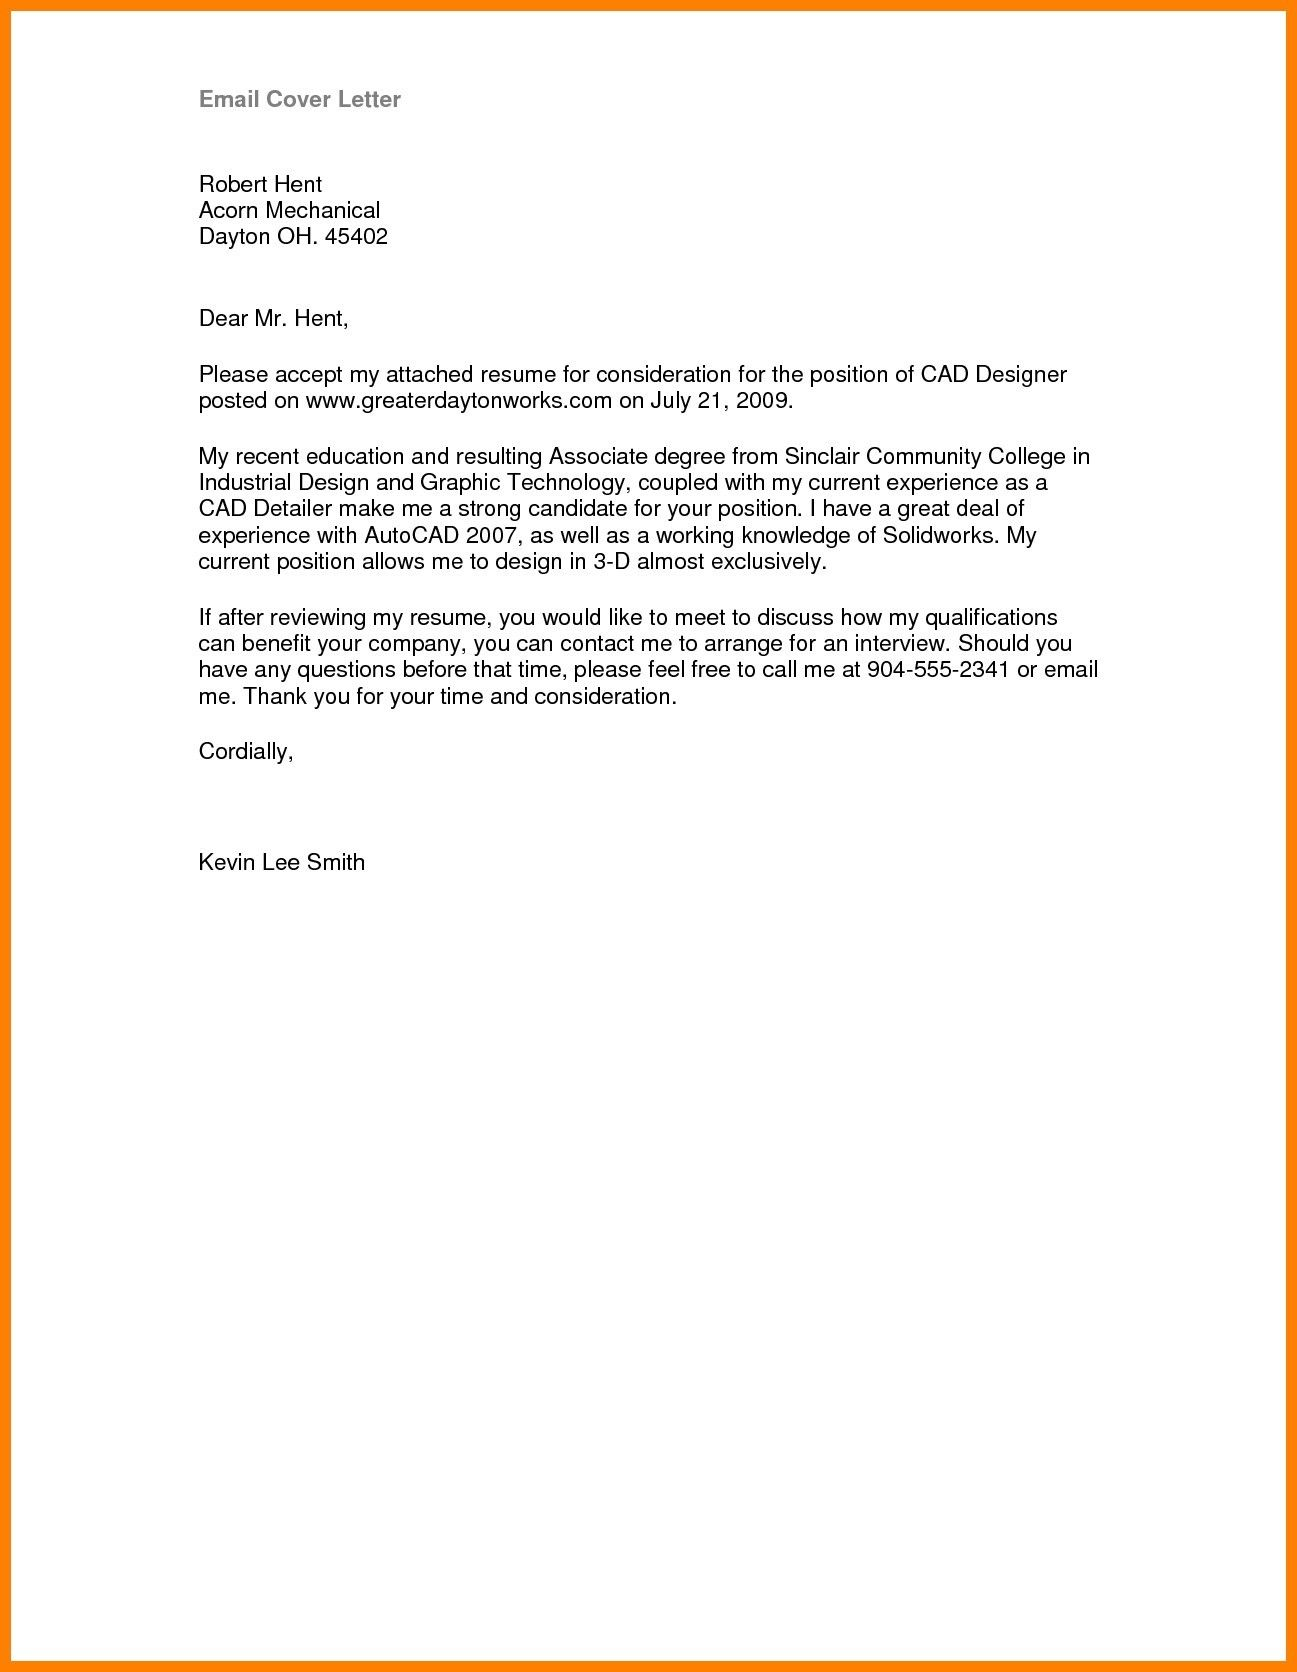 25+ Email Cover Letter Sample in 2020 Email cover letter